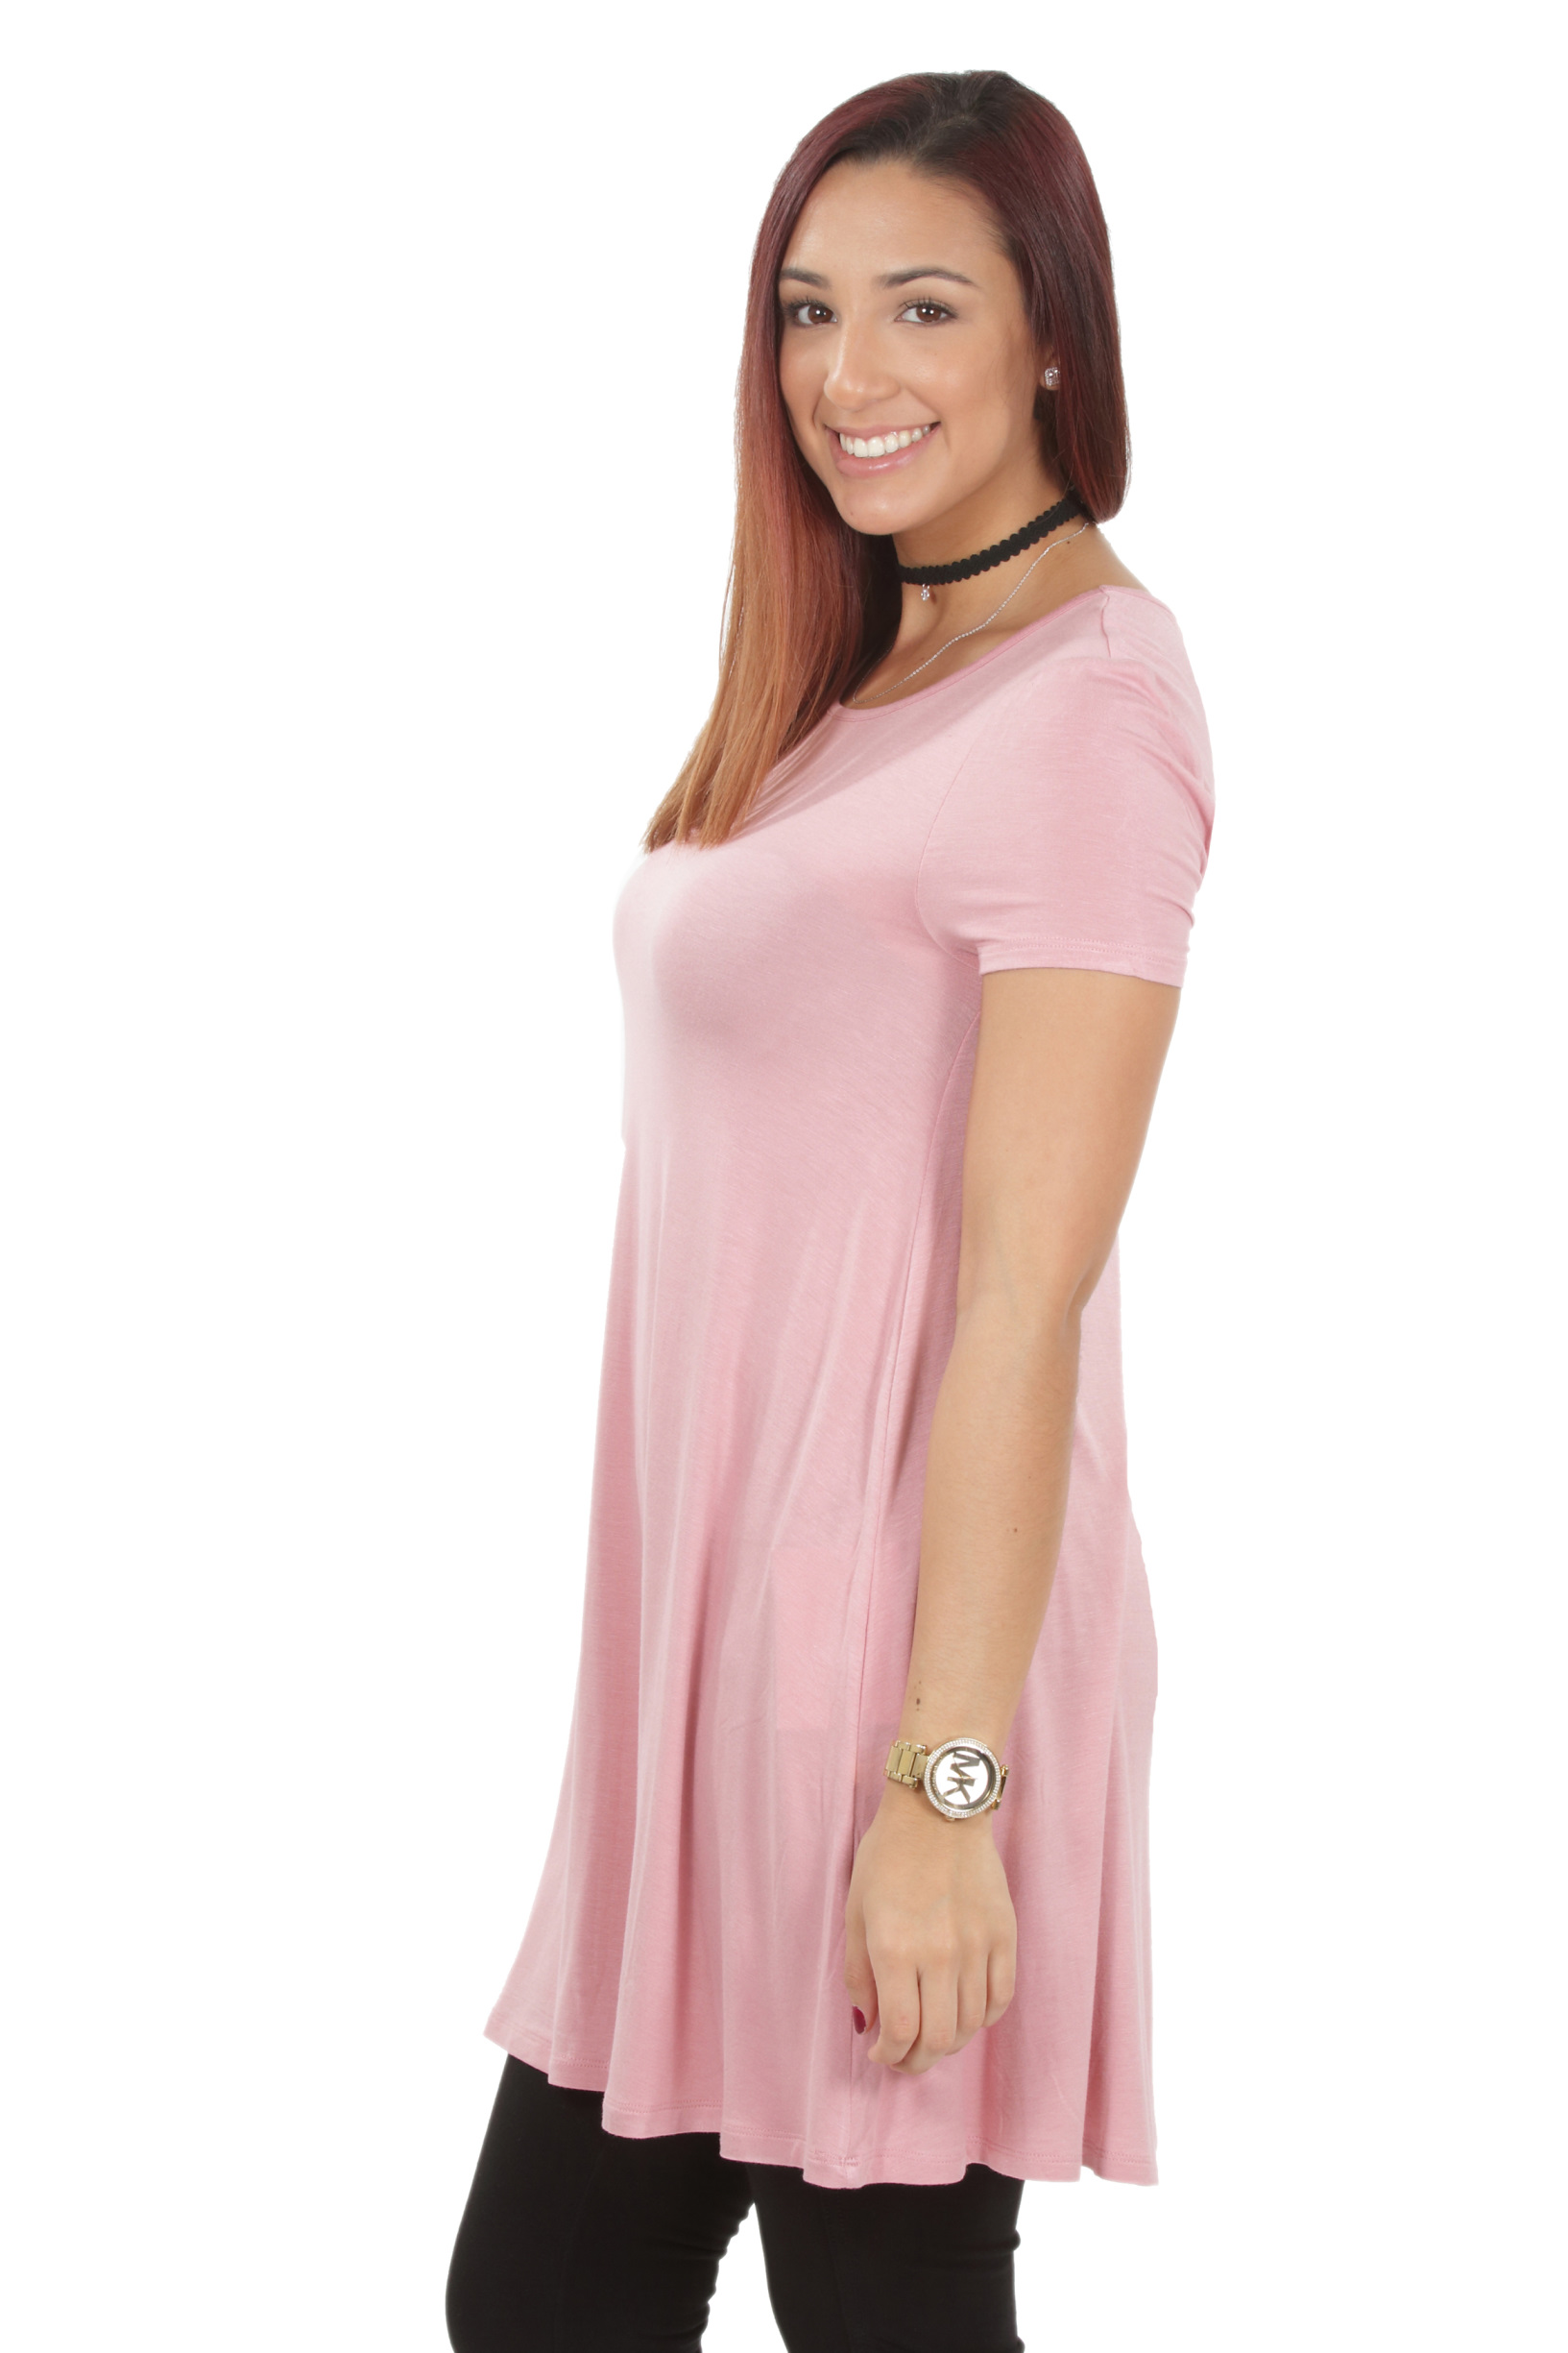 RS1043-Women-039-s-Short-Sleeve-Flare-Hem-Loose-Fit-Round-Neck-Dress-Tunic-Top thumbnail 20